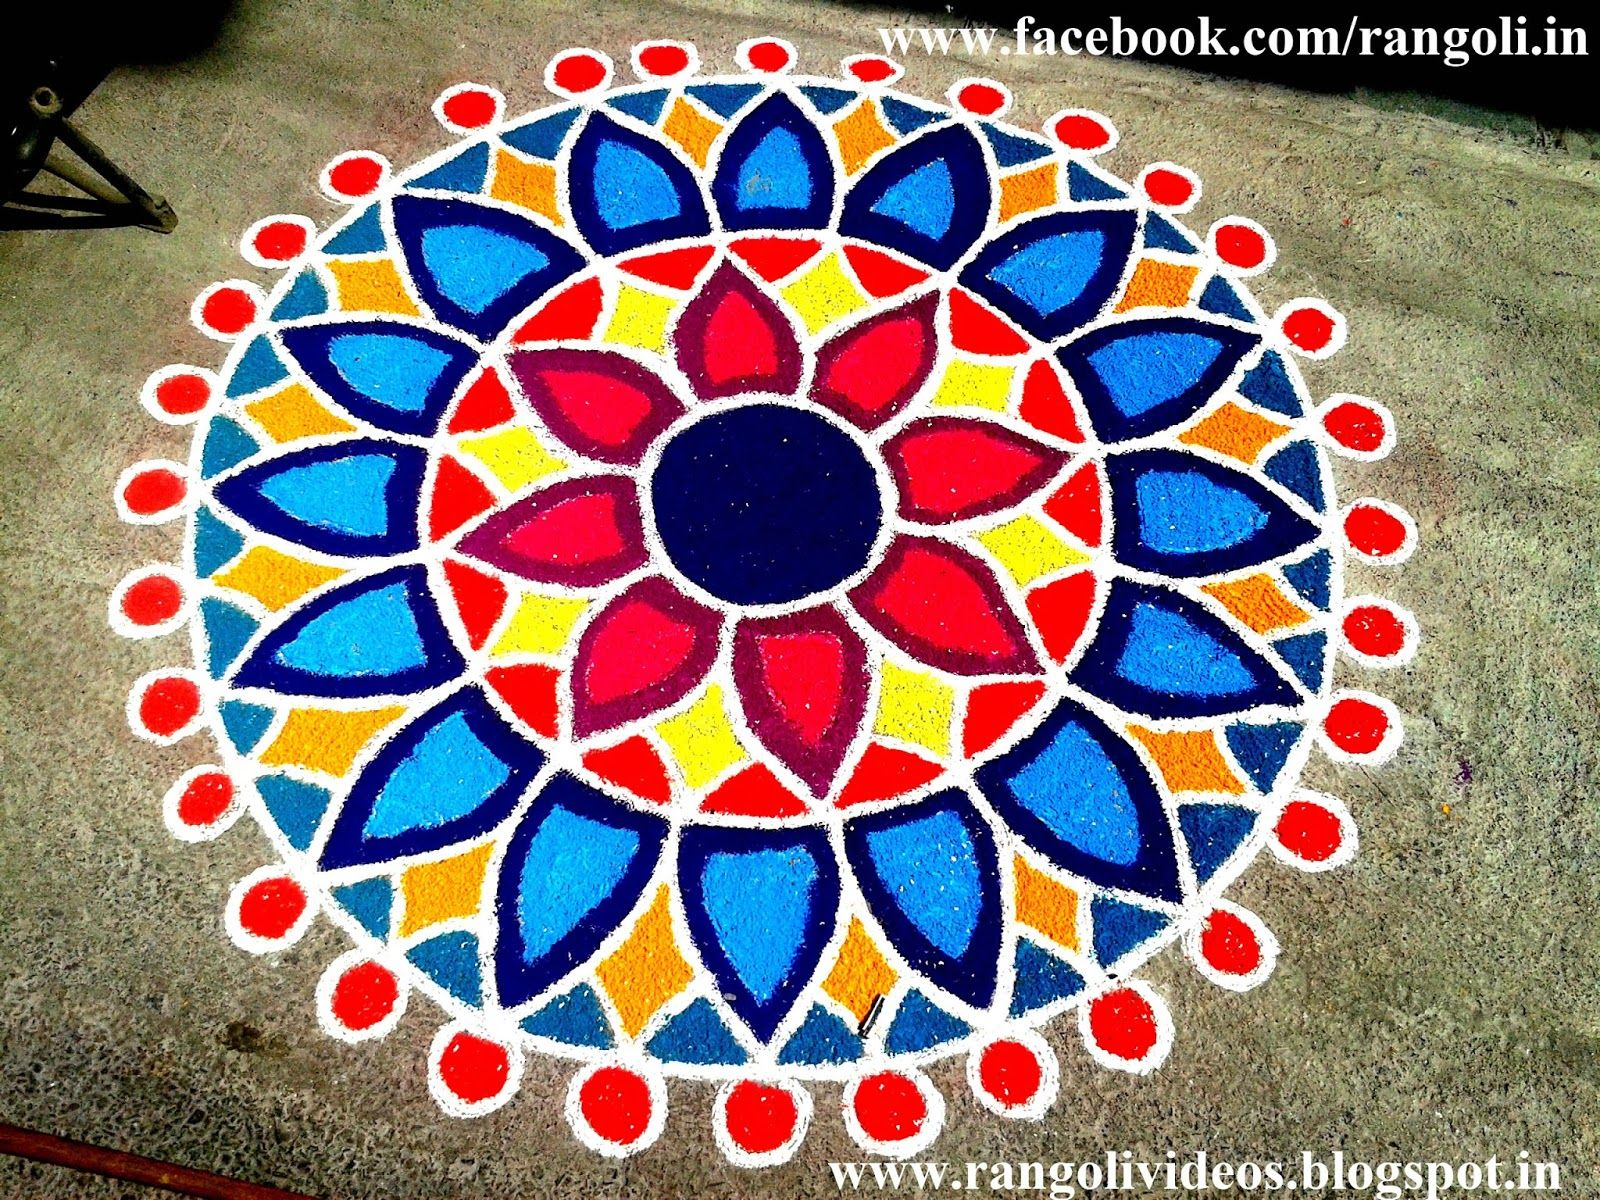 Diwali Rangoli 2013 (With images) Rangoli designs diwali